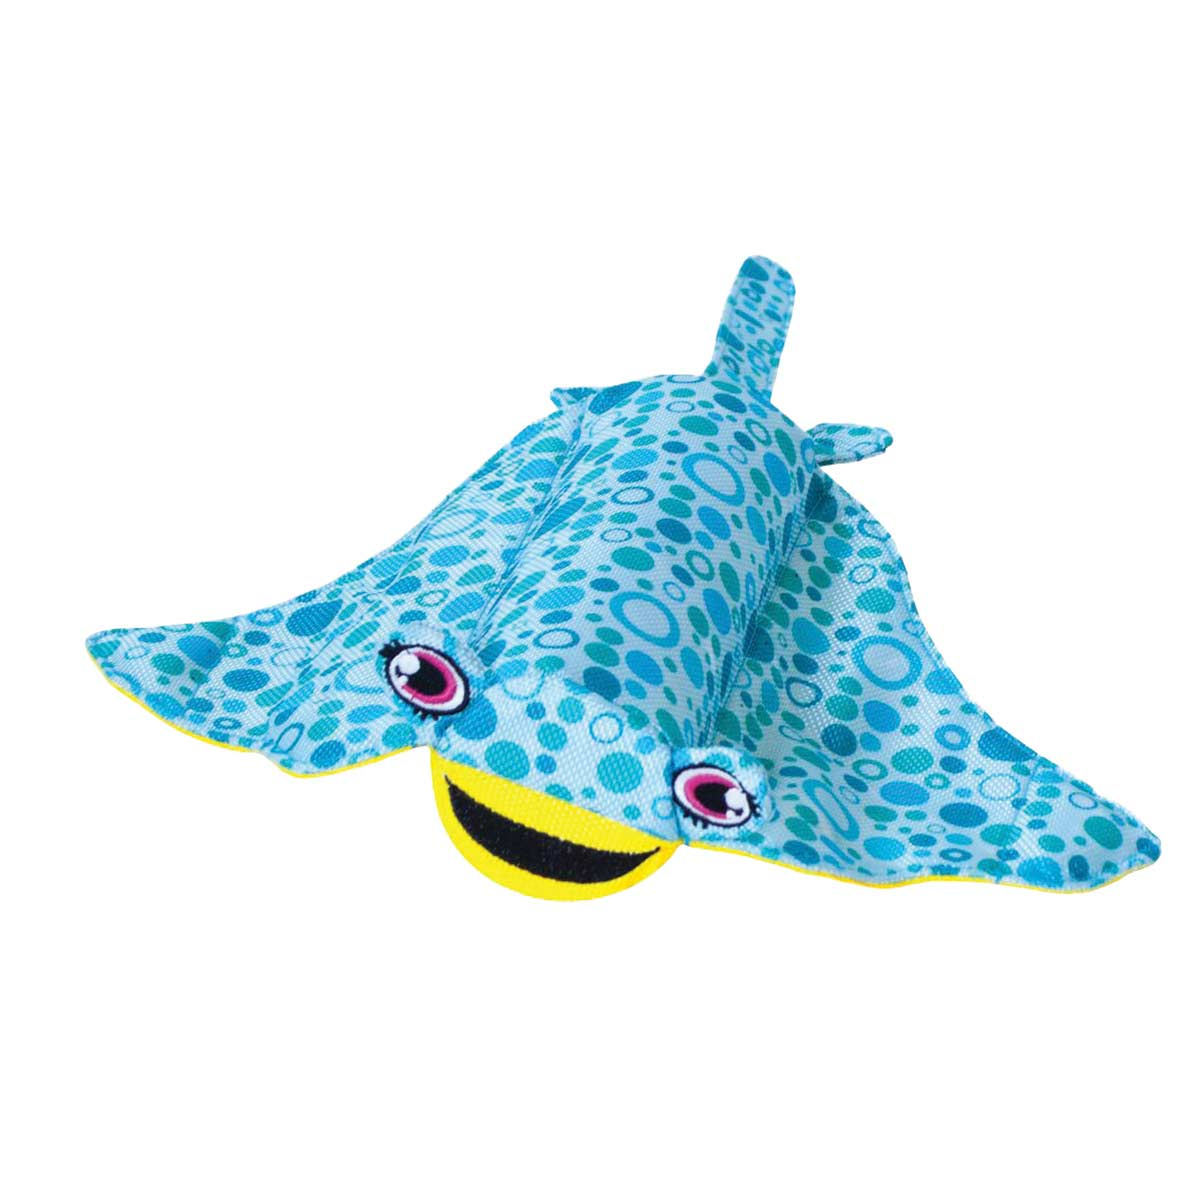 Outward Hound Giggle Stingray 17 inch Water Toys for Dogs